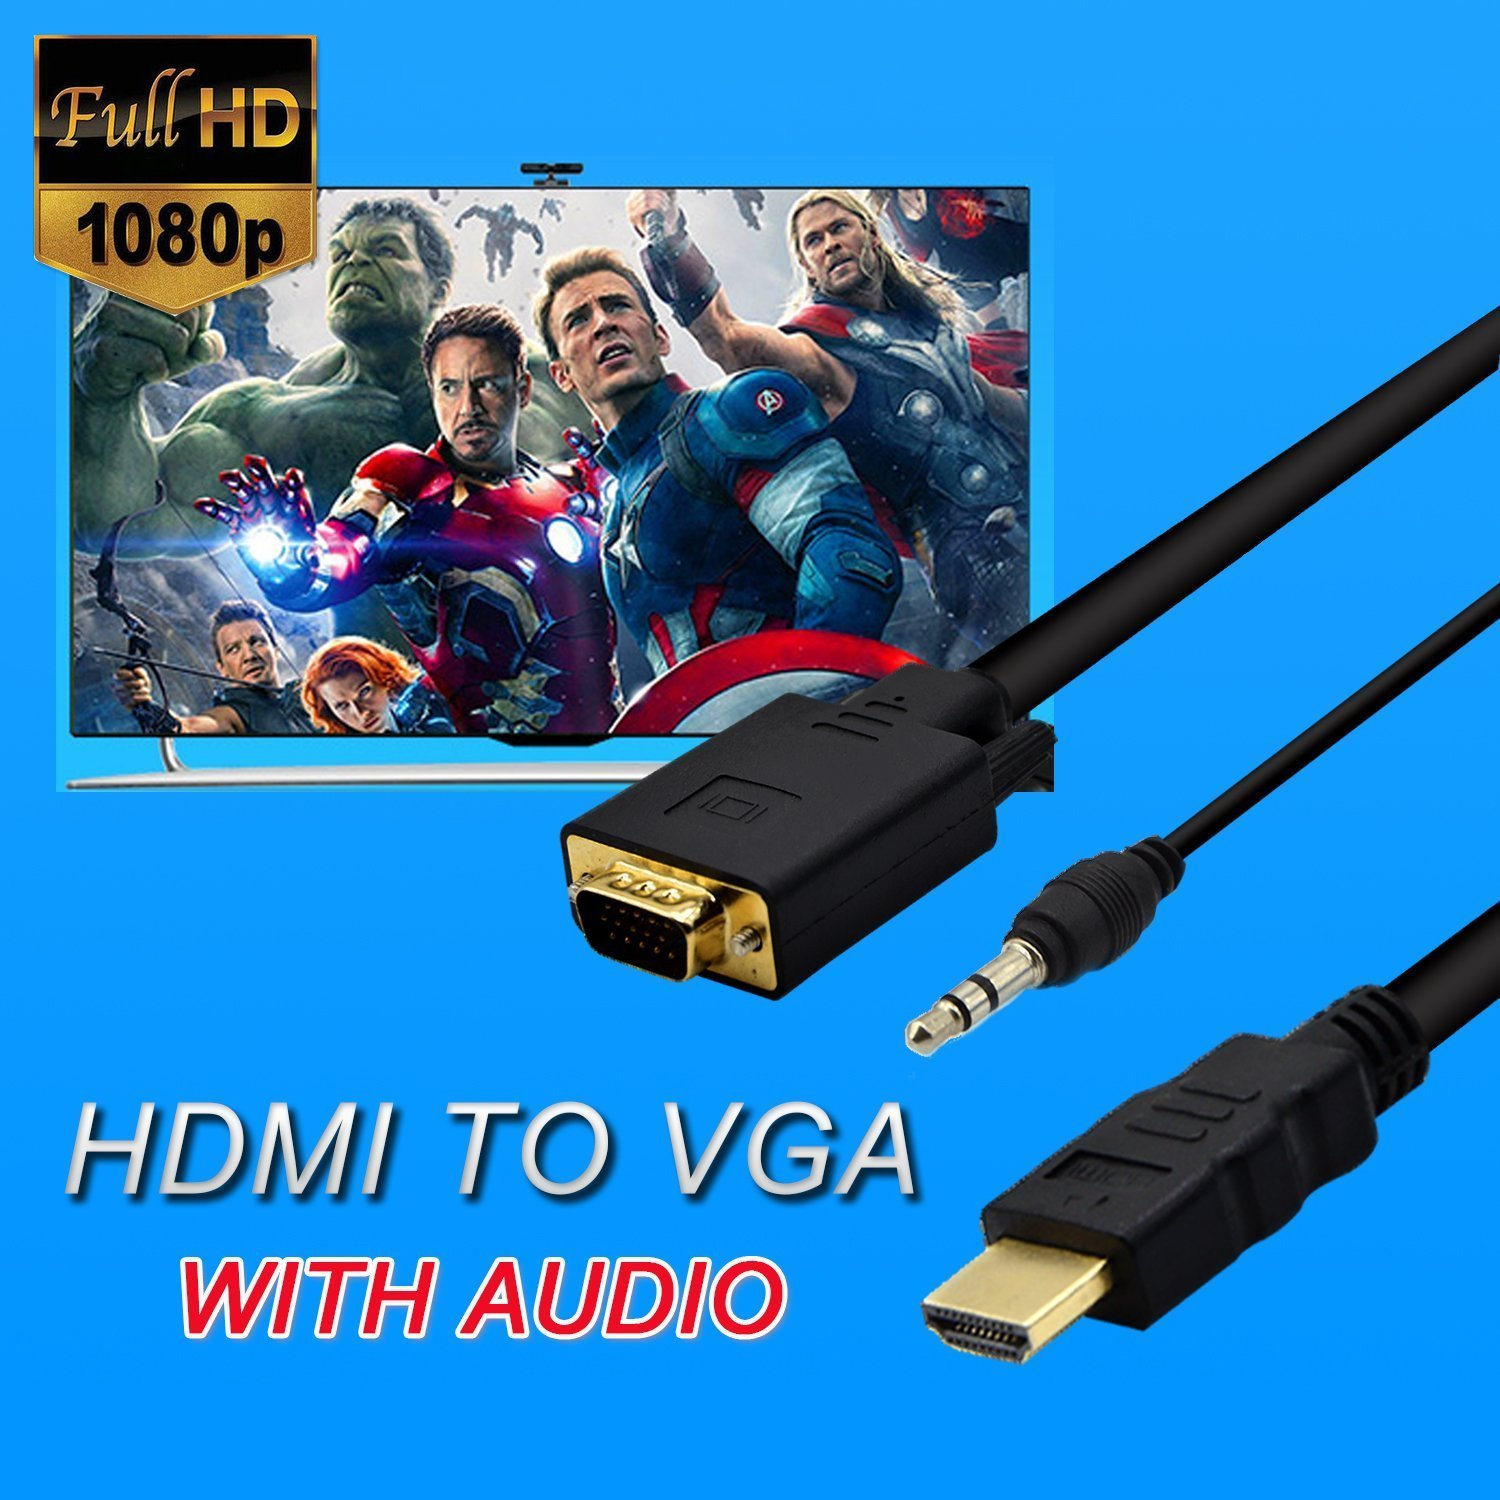 One-Way Signal Conversion from HDMI Equipped PC eBerry 1080P Full HD HDMI to VGA Cable HDMI Male to VGA Male Converter Adapter 3m//10ft Laptop to VGA Equipped Monitor TV Projector